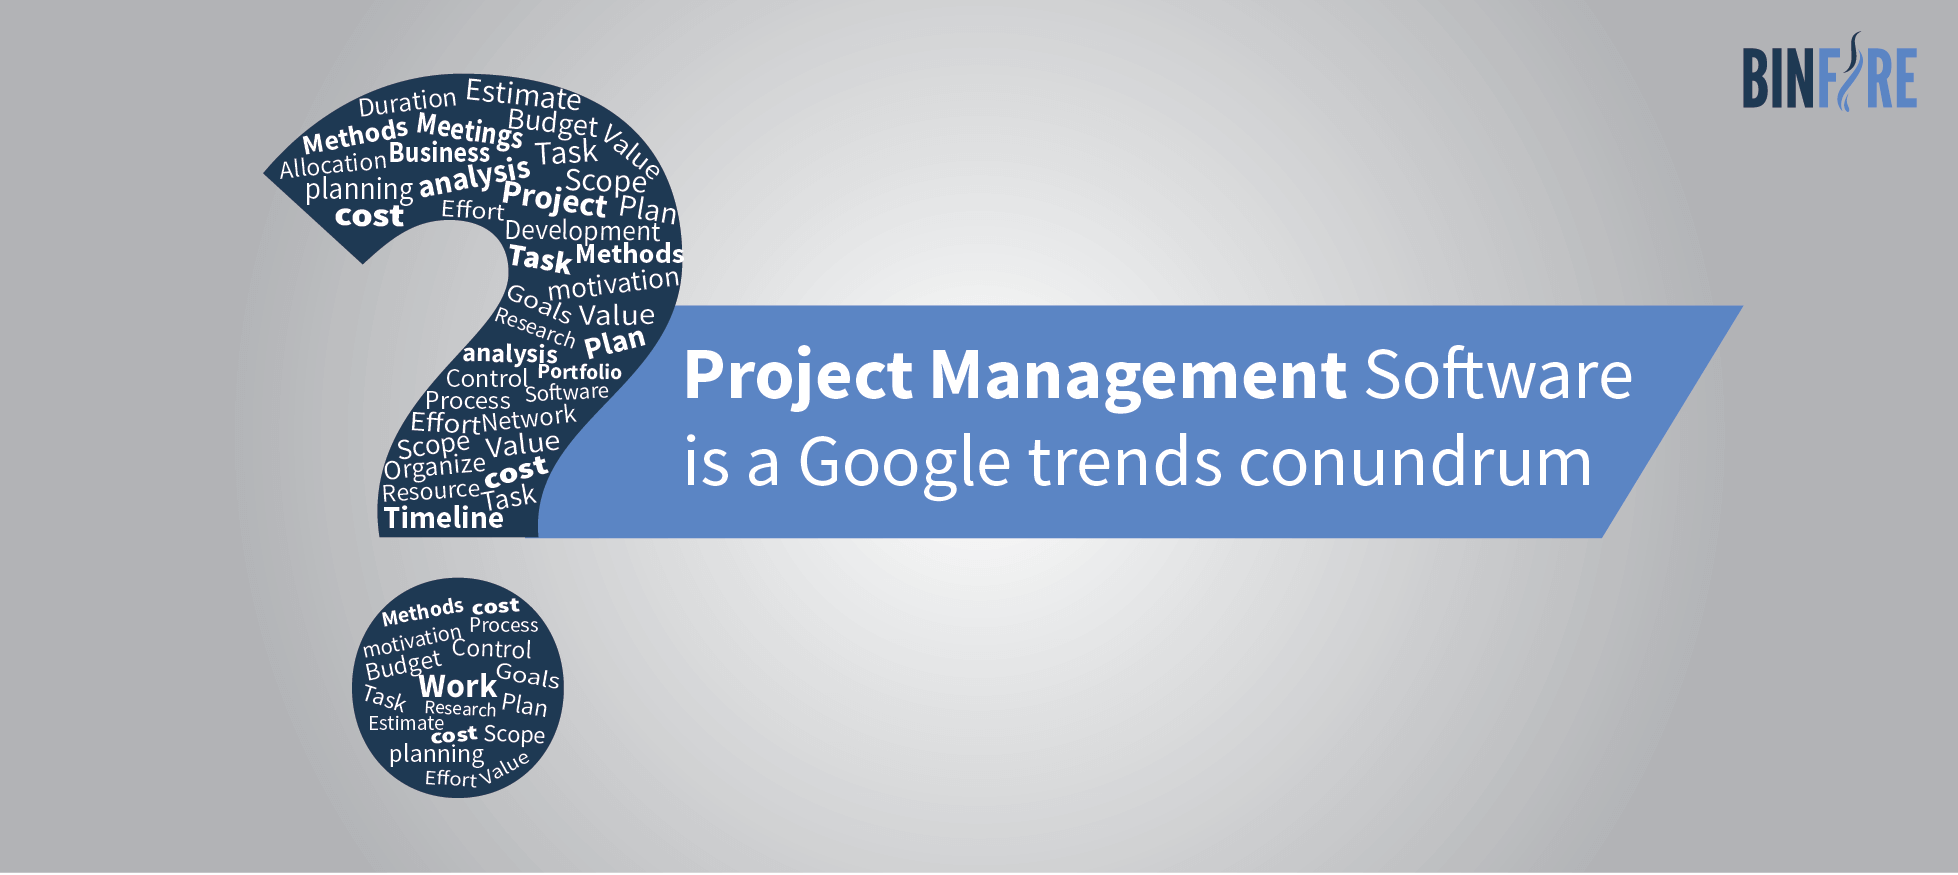 Project management software is a google trends conundrum